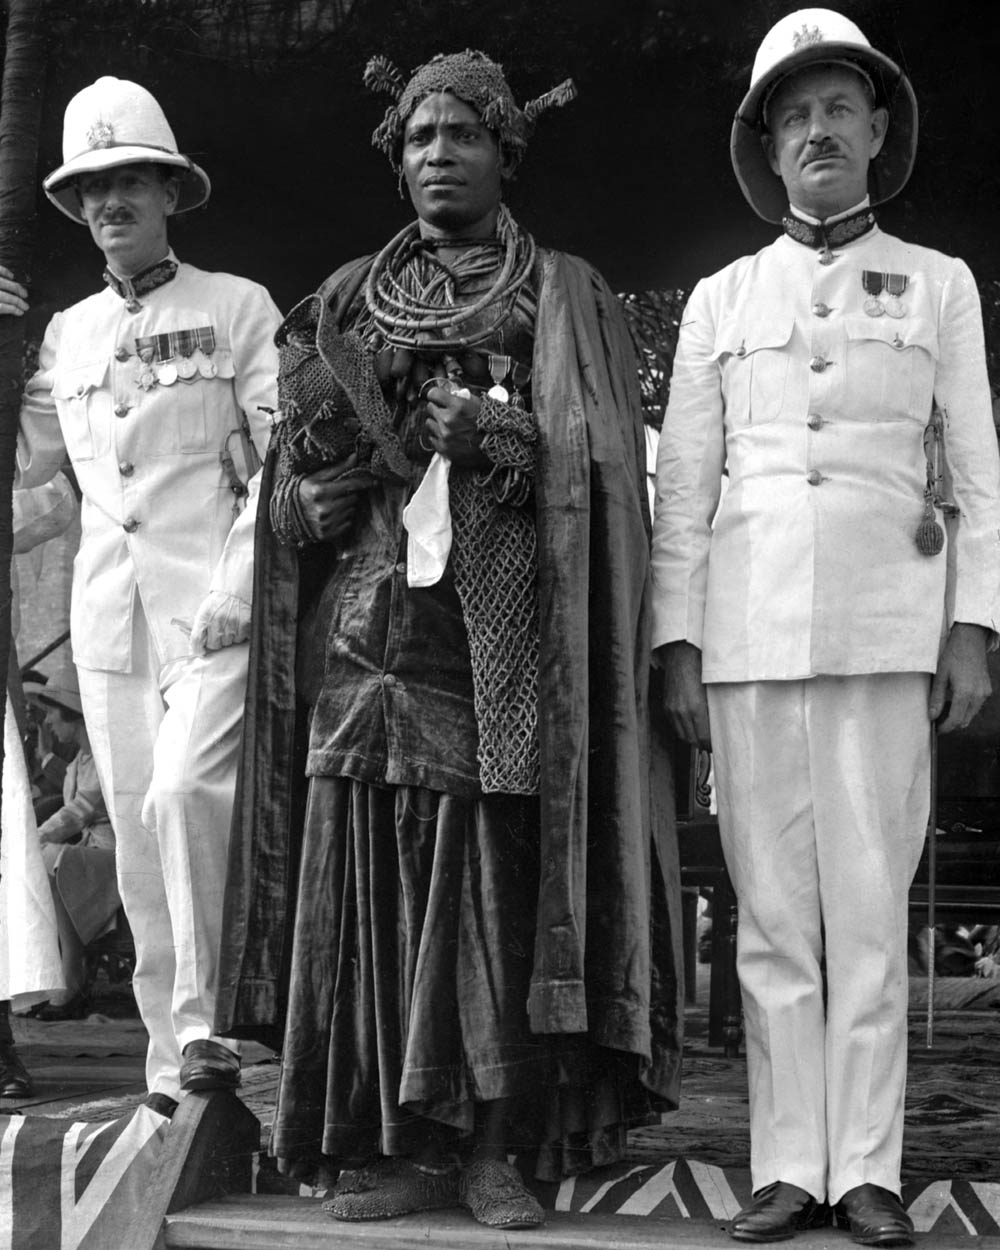 history of cameroon pre independence By grace ongey cameroon, like many developing countries, has a long independence-related media turbulence history communication, considered as one of the keys to a people-centered.